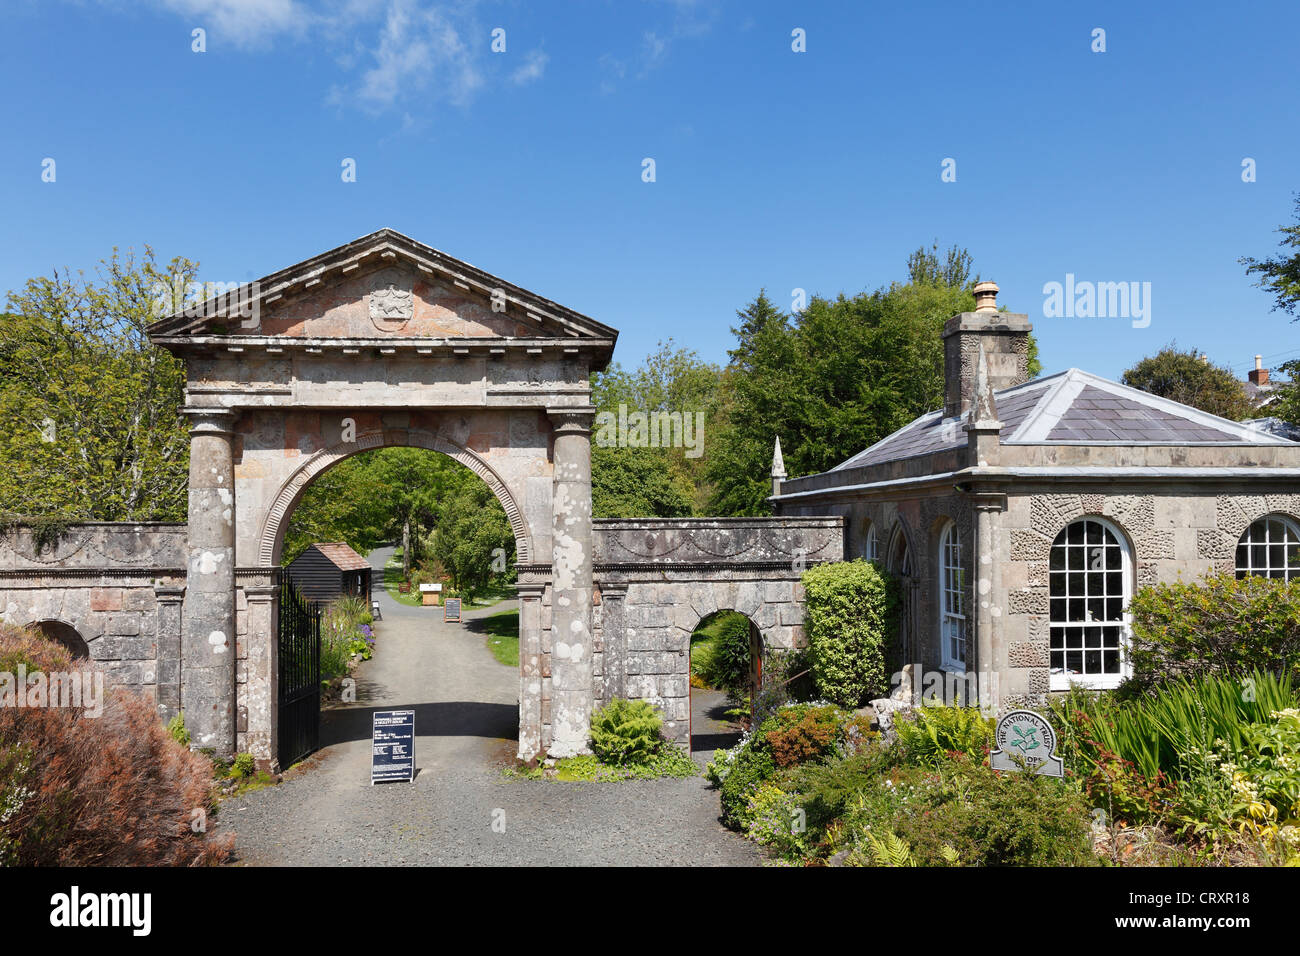 United Kingdom, Northern Ireland, County Derry, View of Bishops Gate - Stock Image